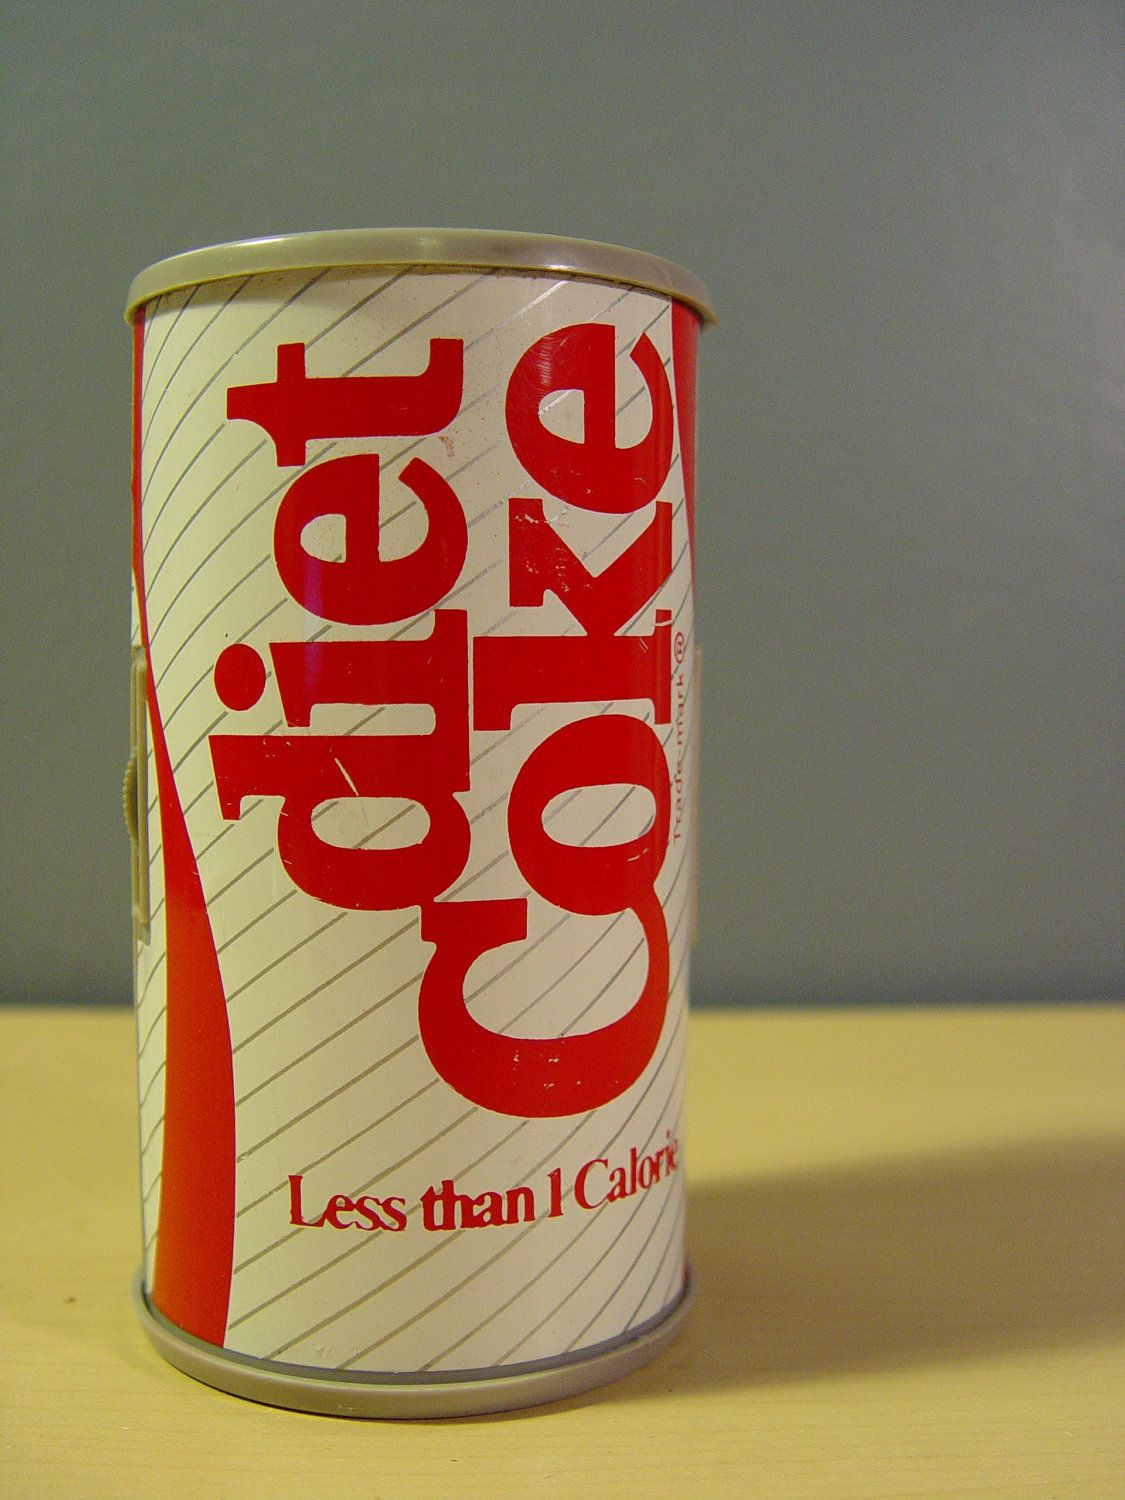 what was in diet soda in the 1980s